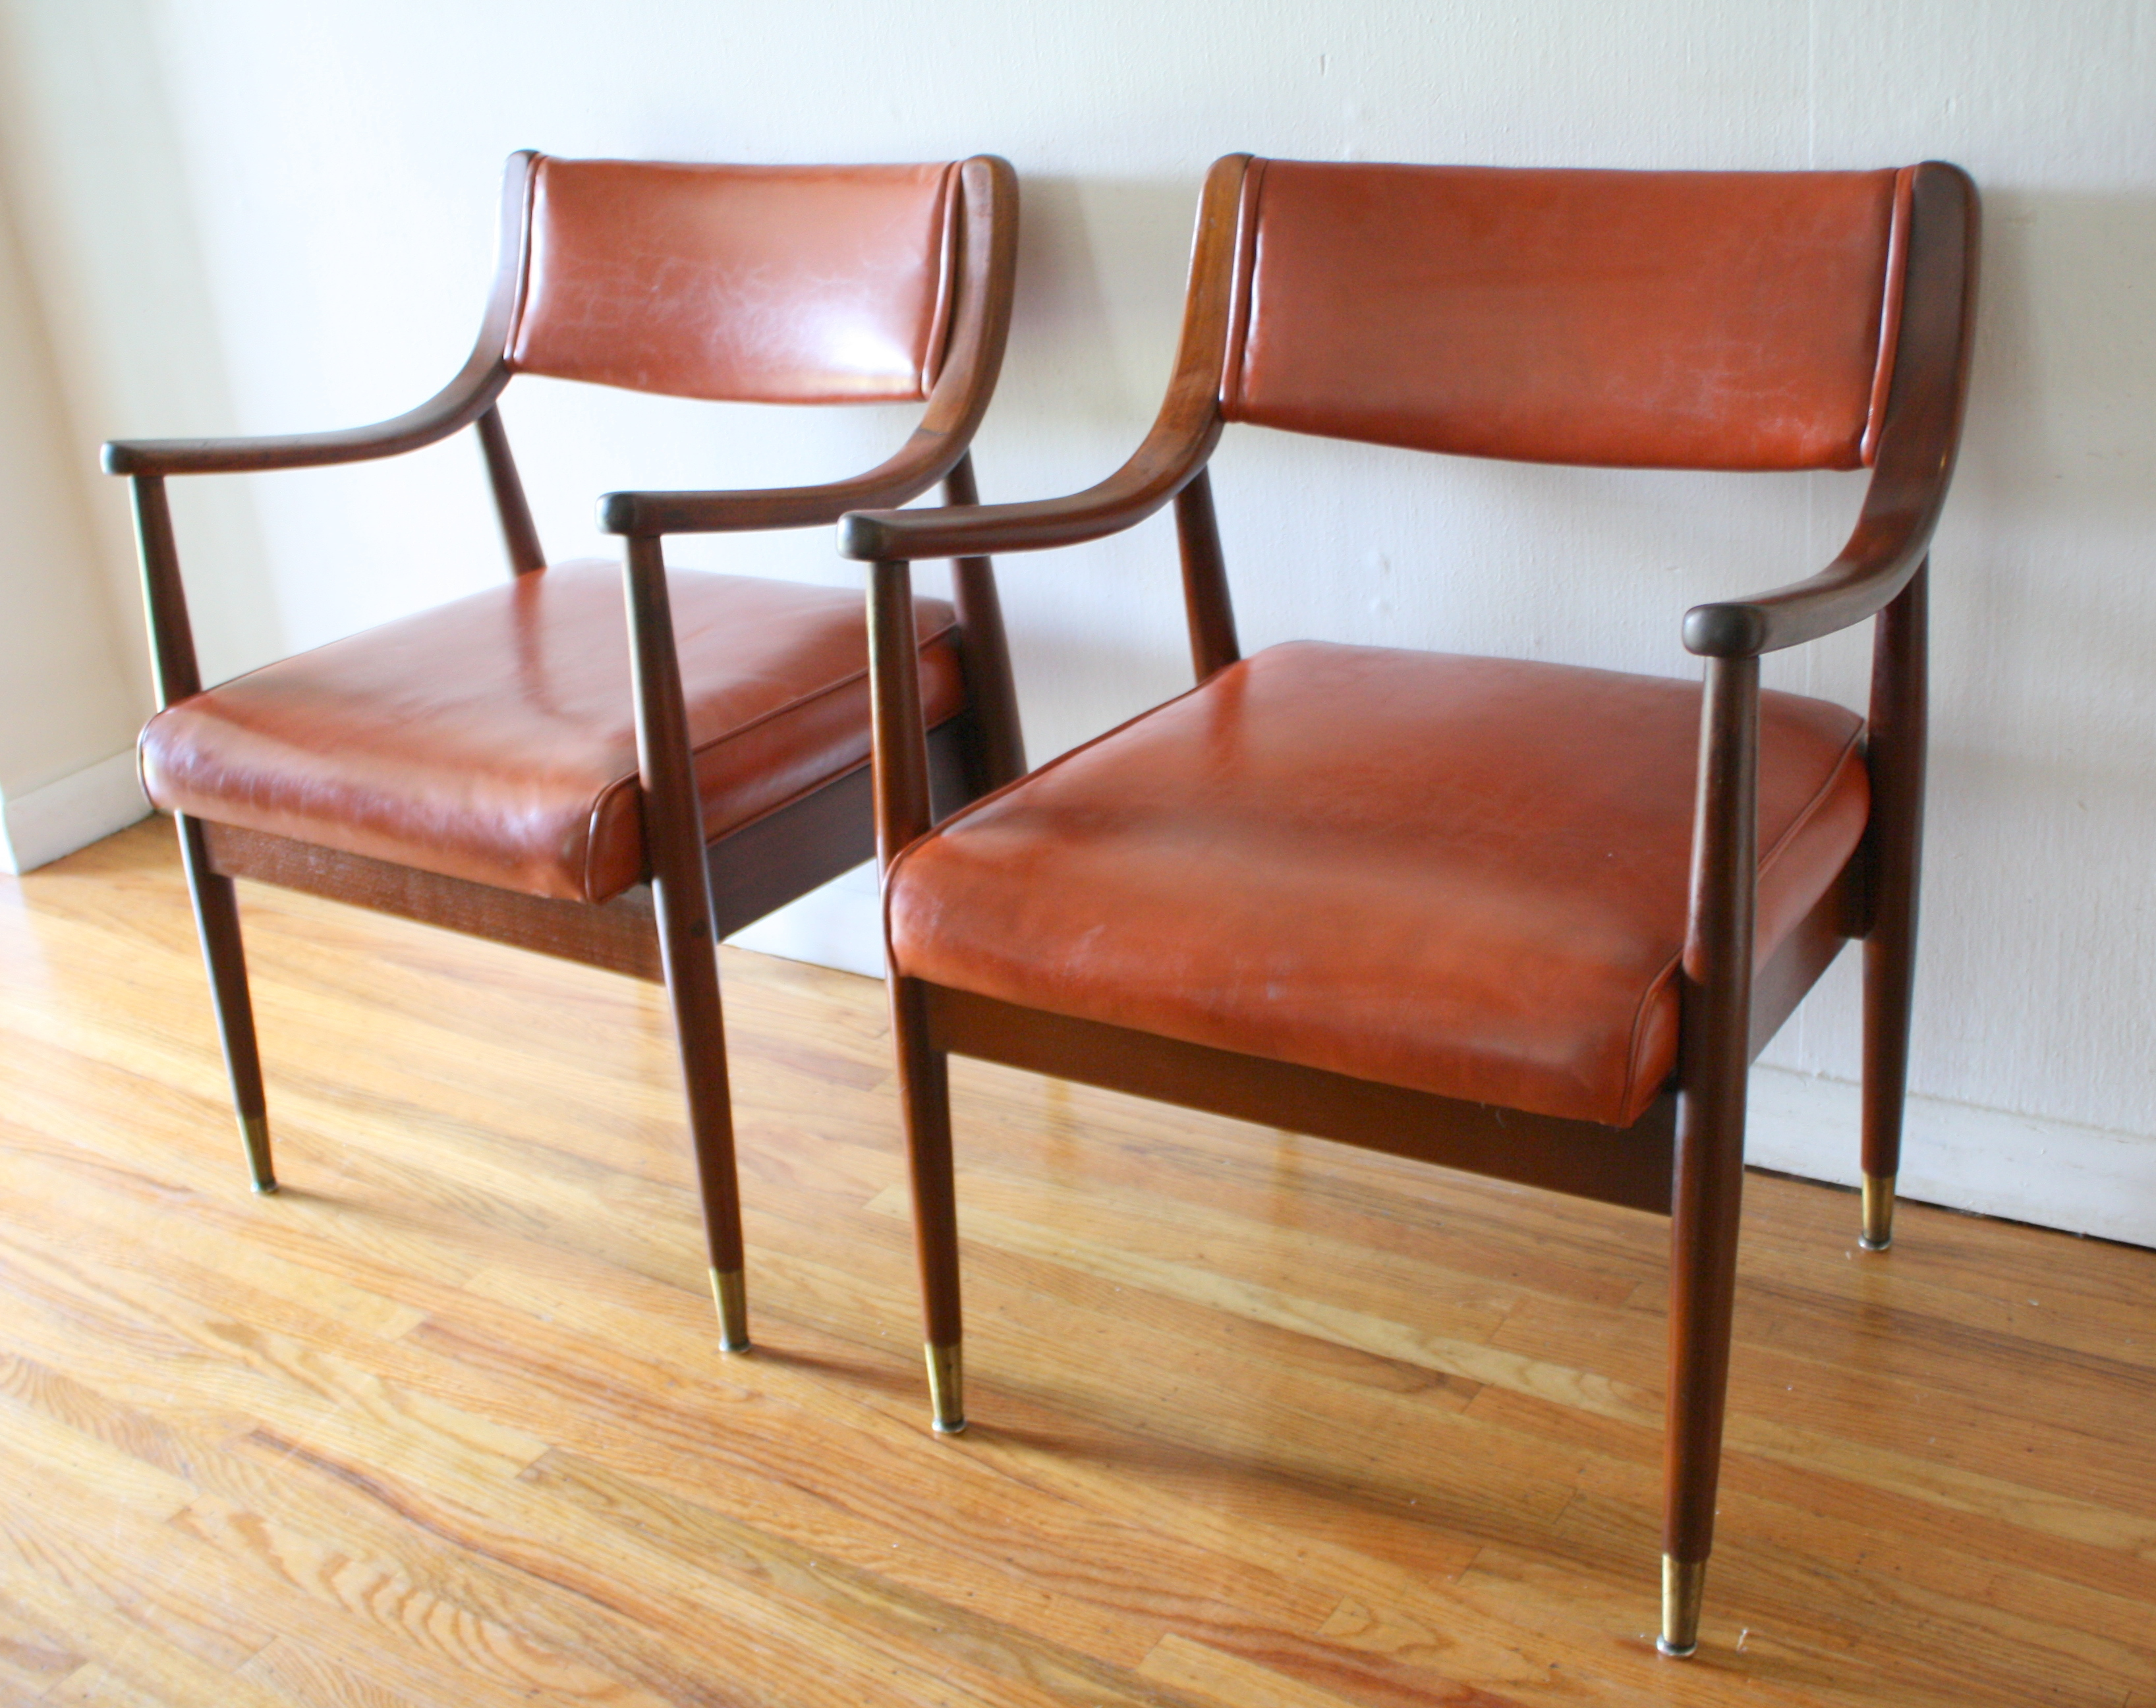 Exceptionnel Mcm Pair Of Orange Chairs 3. Both Pairs Of Mid Century ...